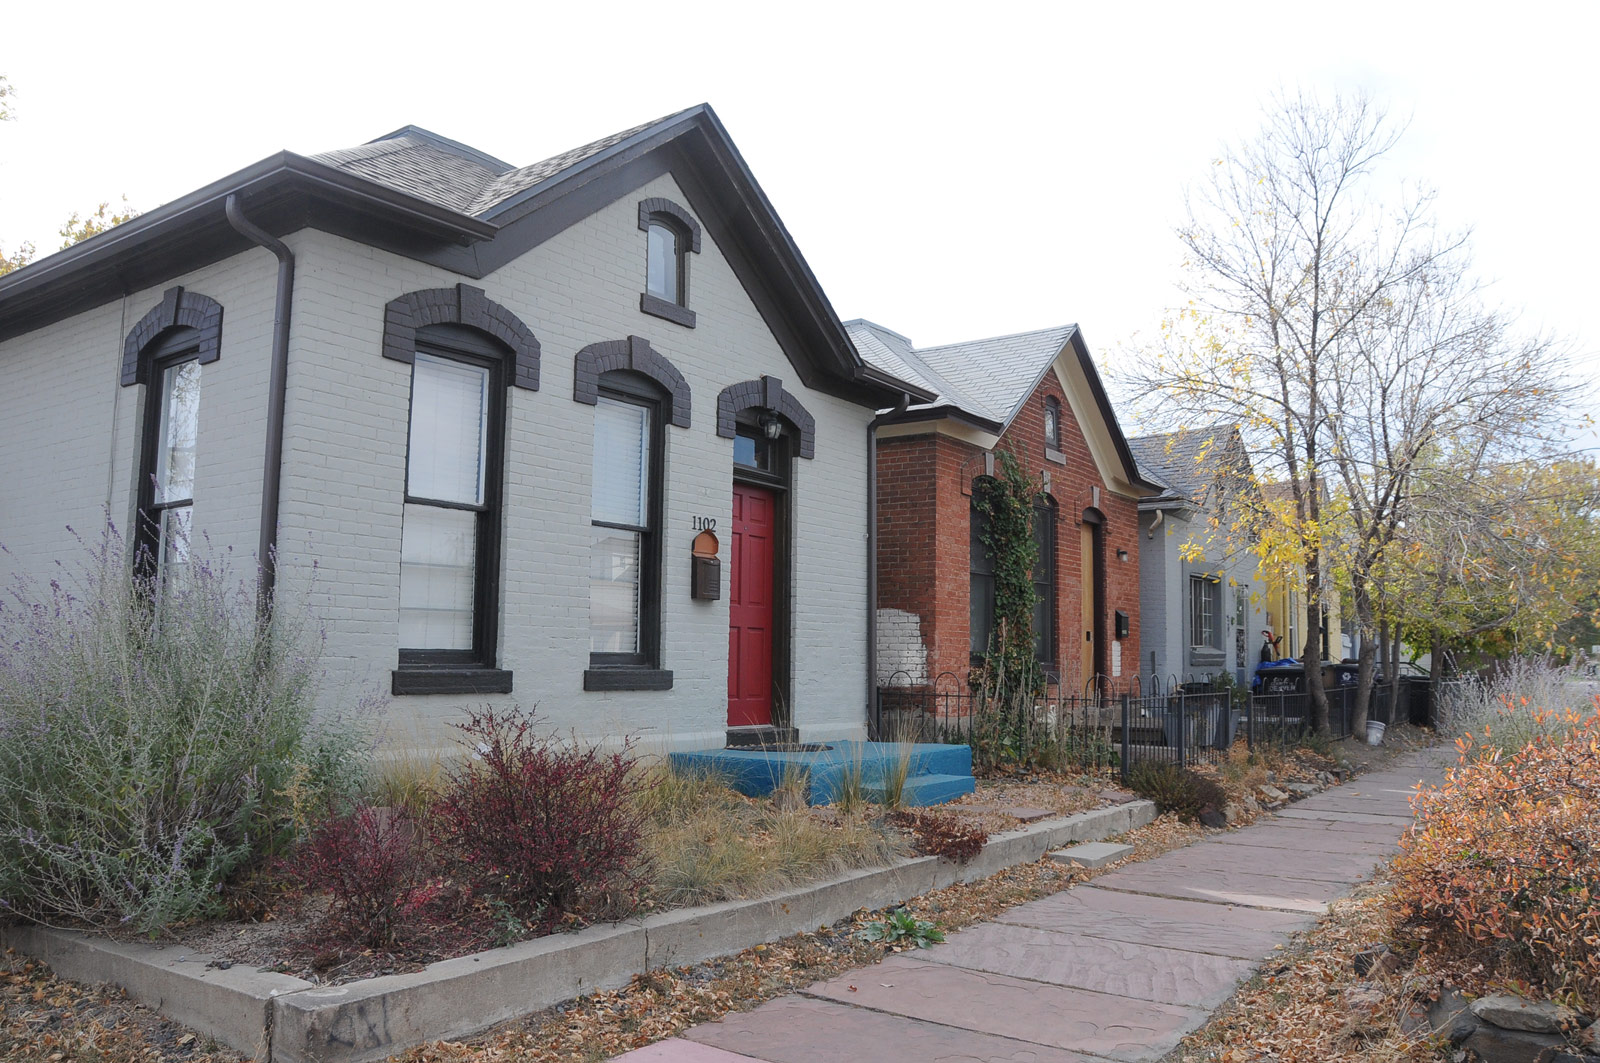 A row of Italianate Cottages. The red brick second house in, is where a Chicana leader, Josie Acosta, grew up as a little girl.